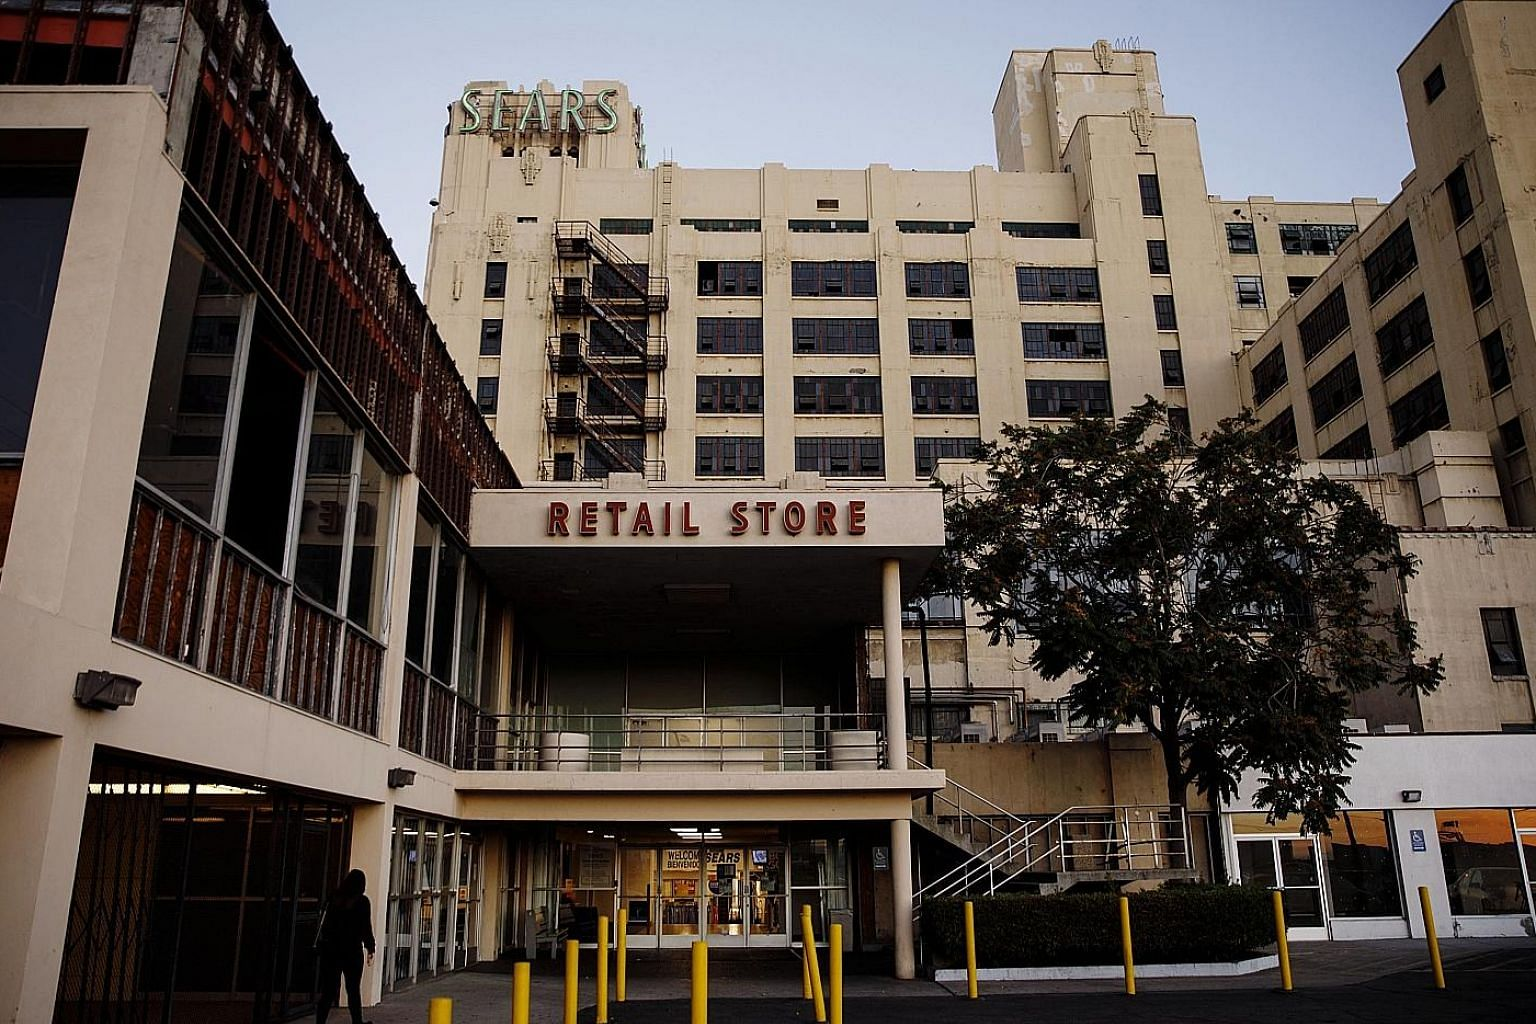 The landmark Sears, Roebuck & Co Mail Order Building in the Boyle Heights neighbourhood of Los Angeles, California. The 125-year-old Sears, which became an American icon with its famous catalogue, now lists more than US$10 billion (S$13.8 billion) in